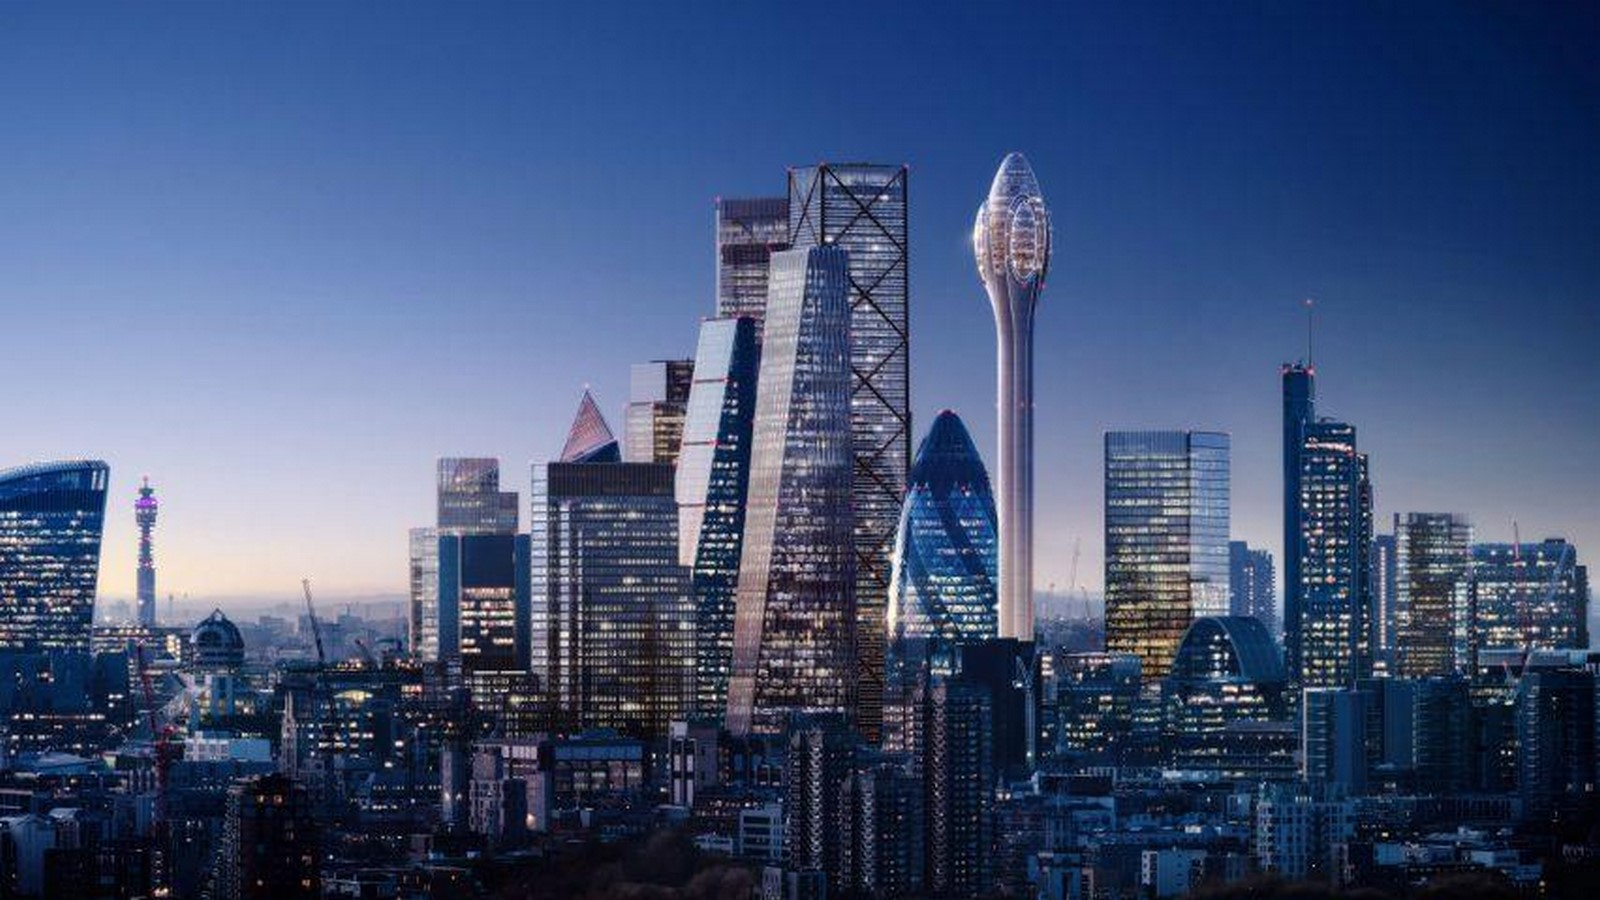 The Design of London Skyscrapers - Sheet11